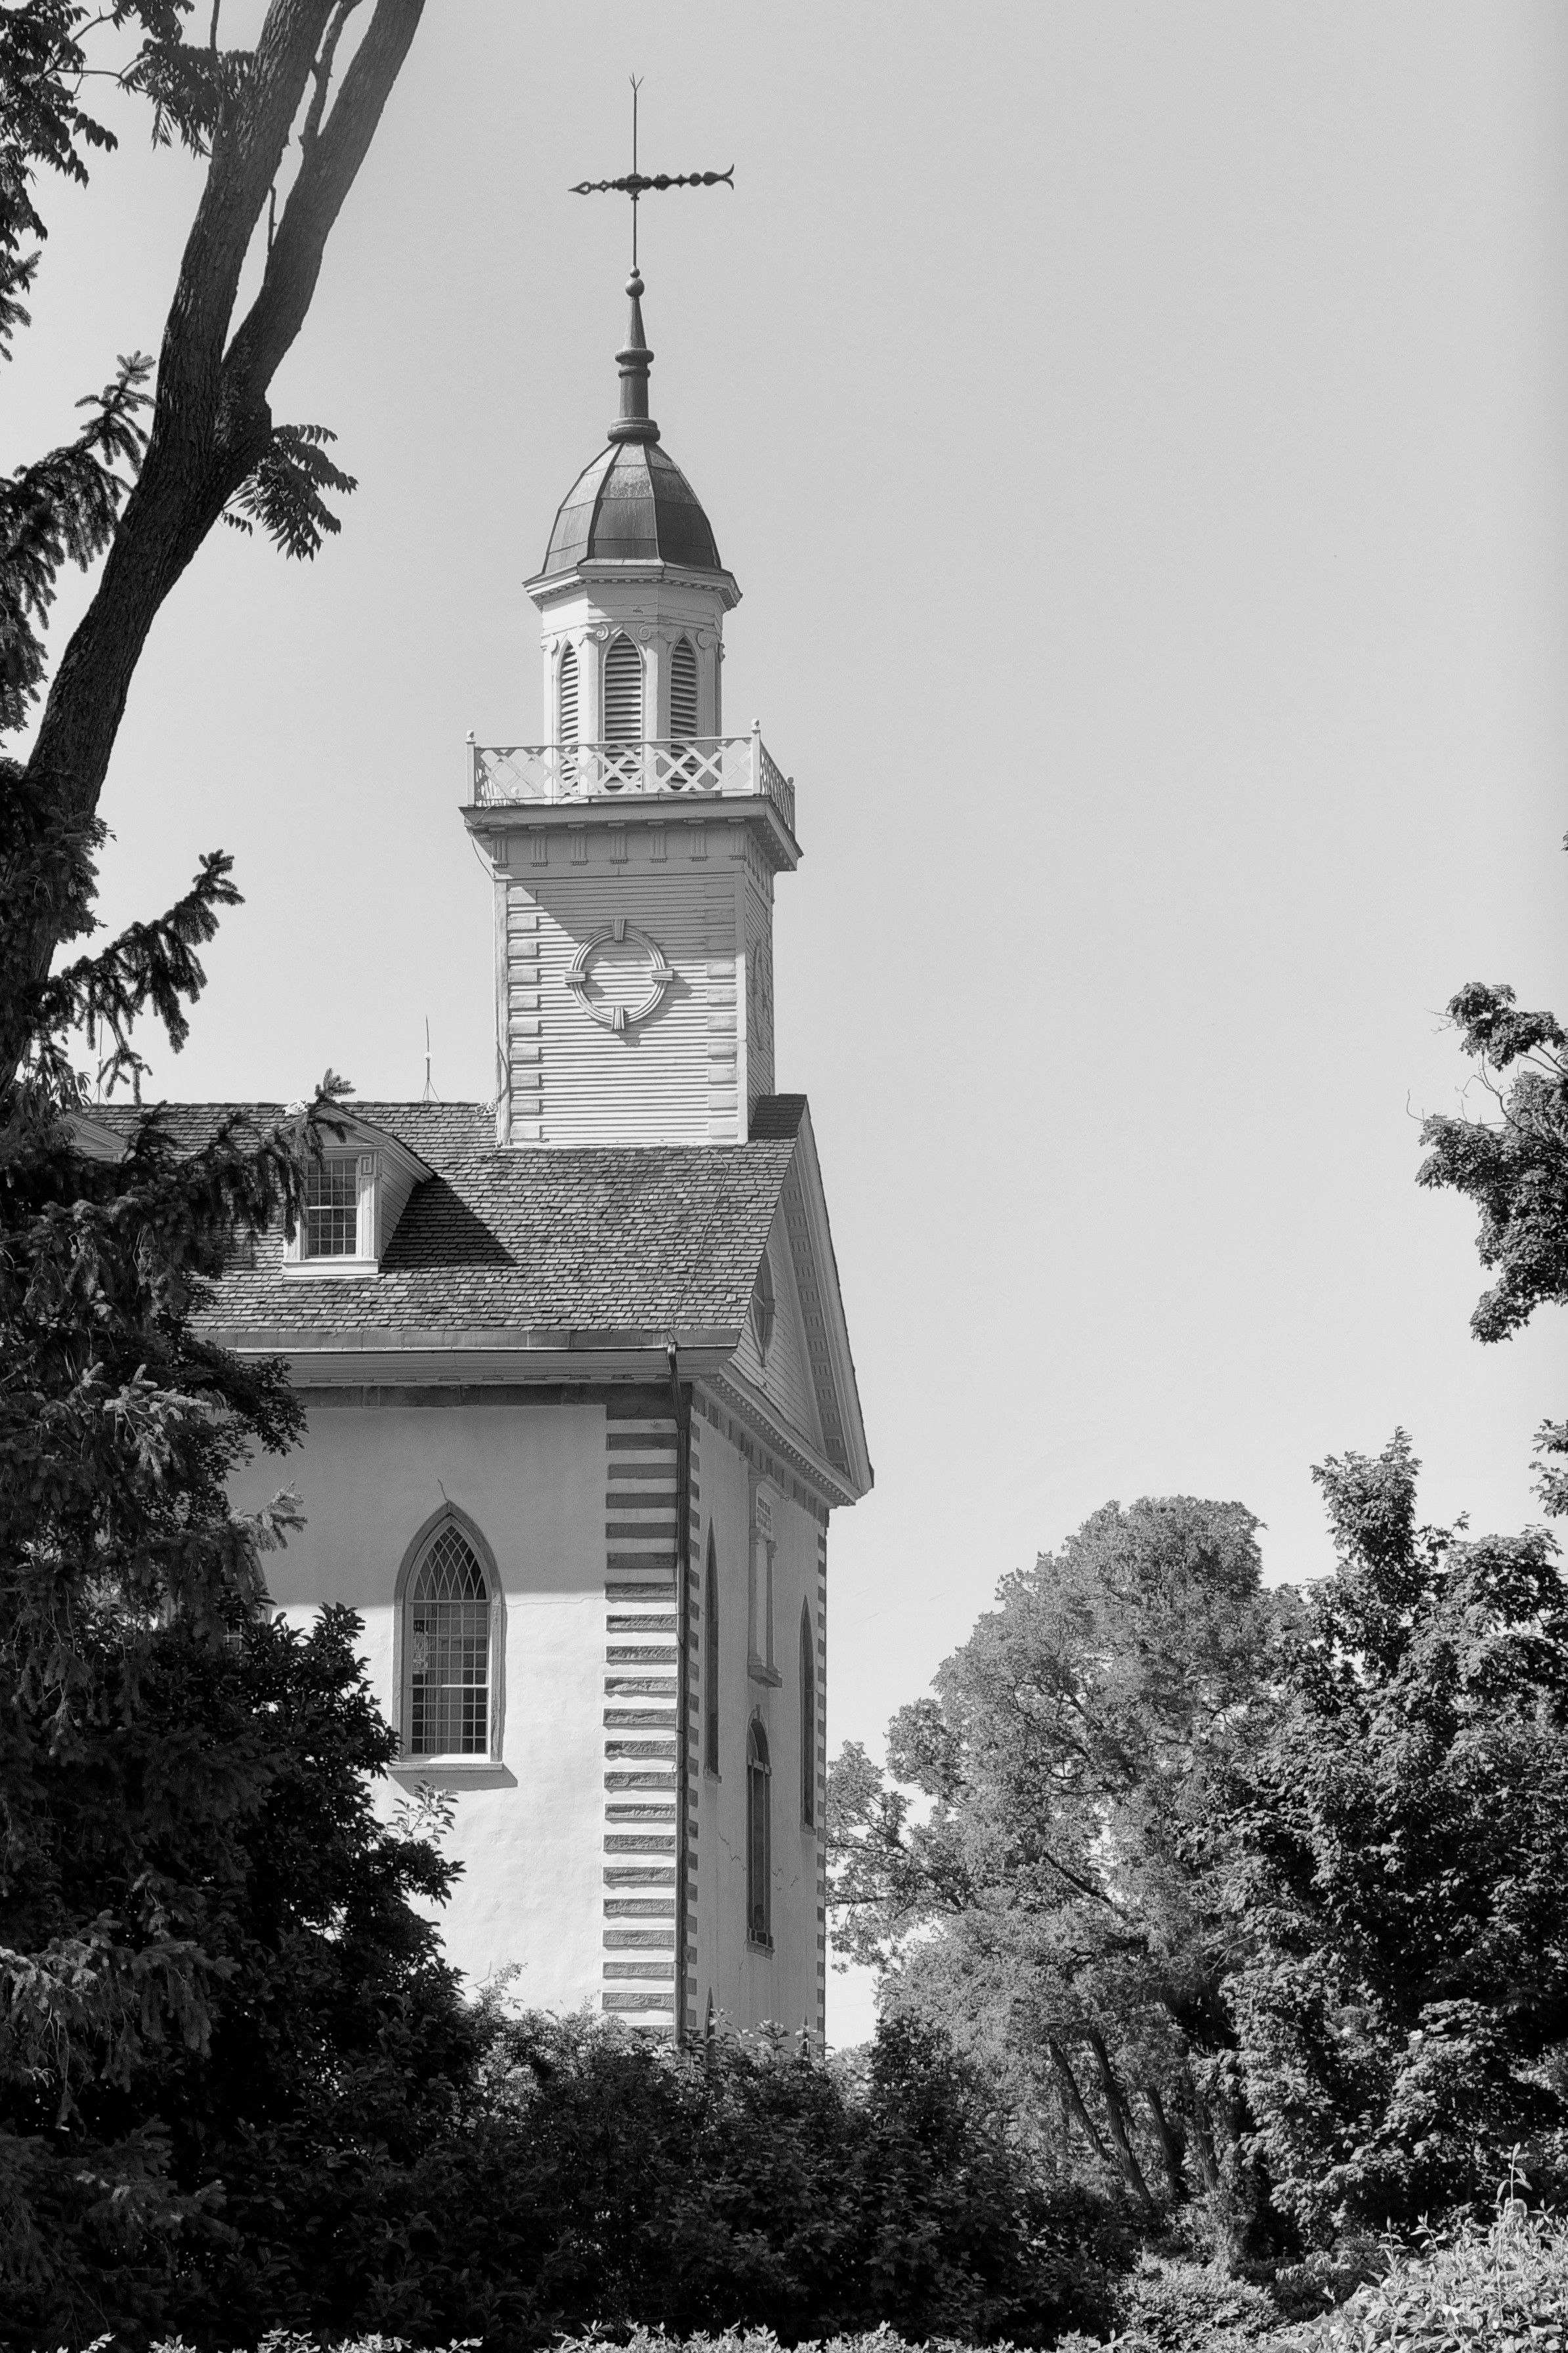 The Kirtland Temple spire in black and white, including scenery.